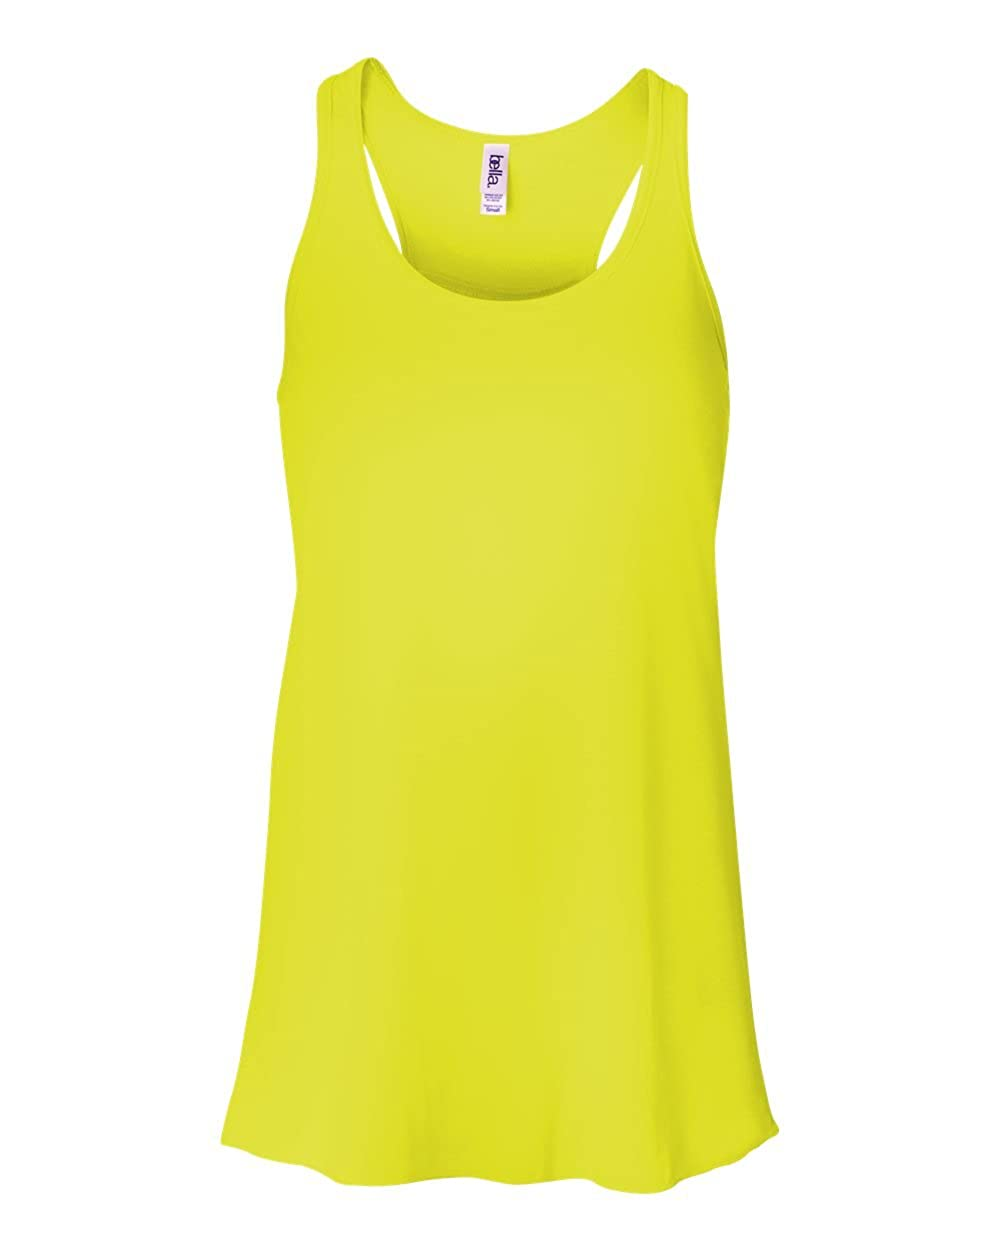 Bella+Canvas Trendy Women's Flowy Racerback Tank 87405